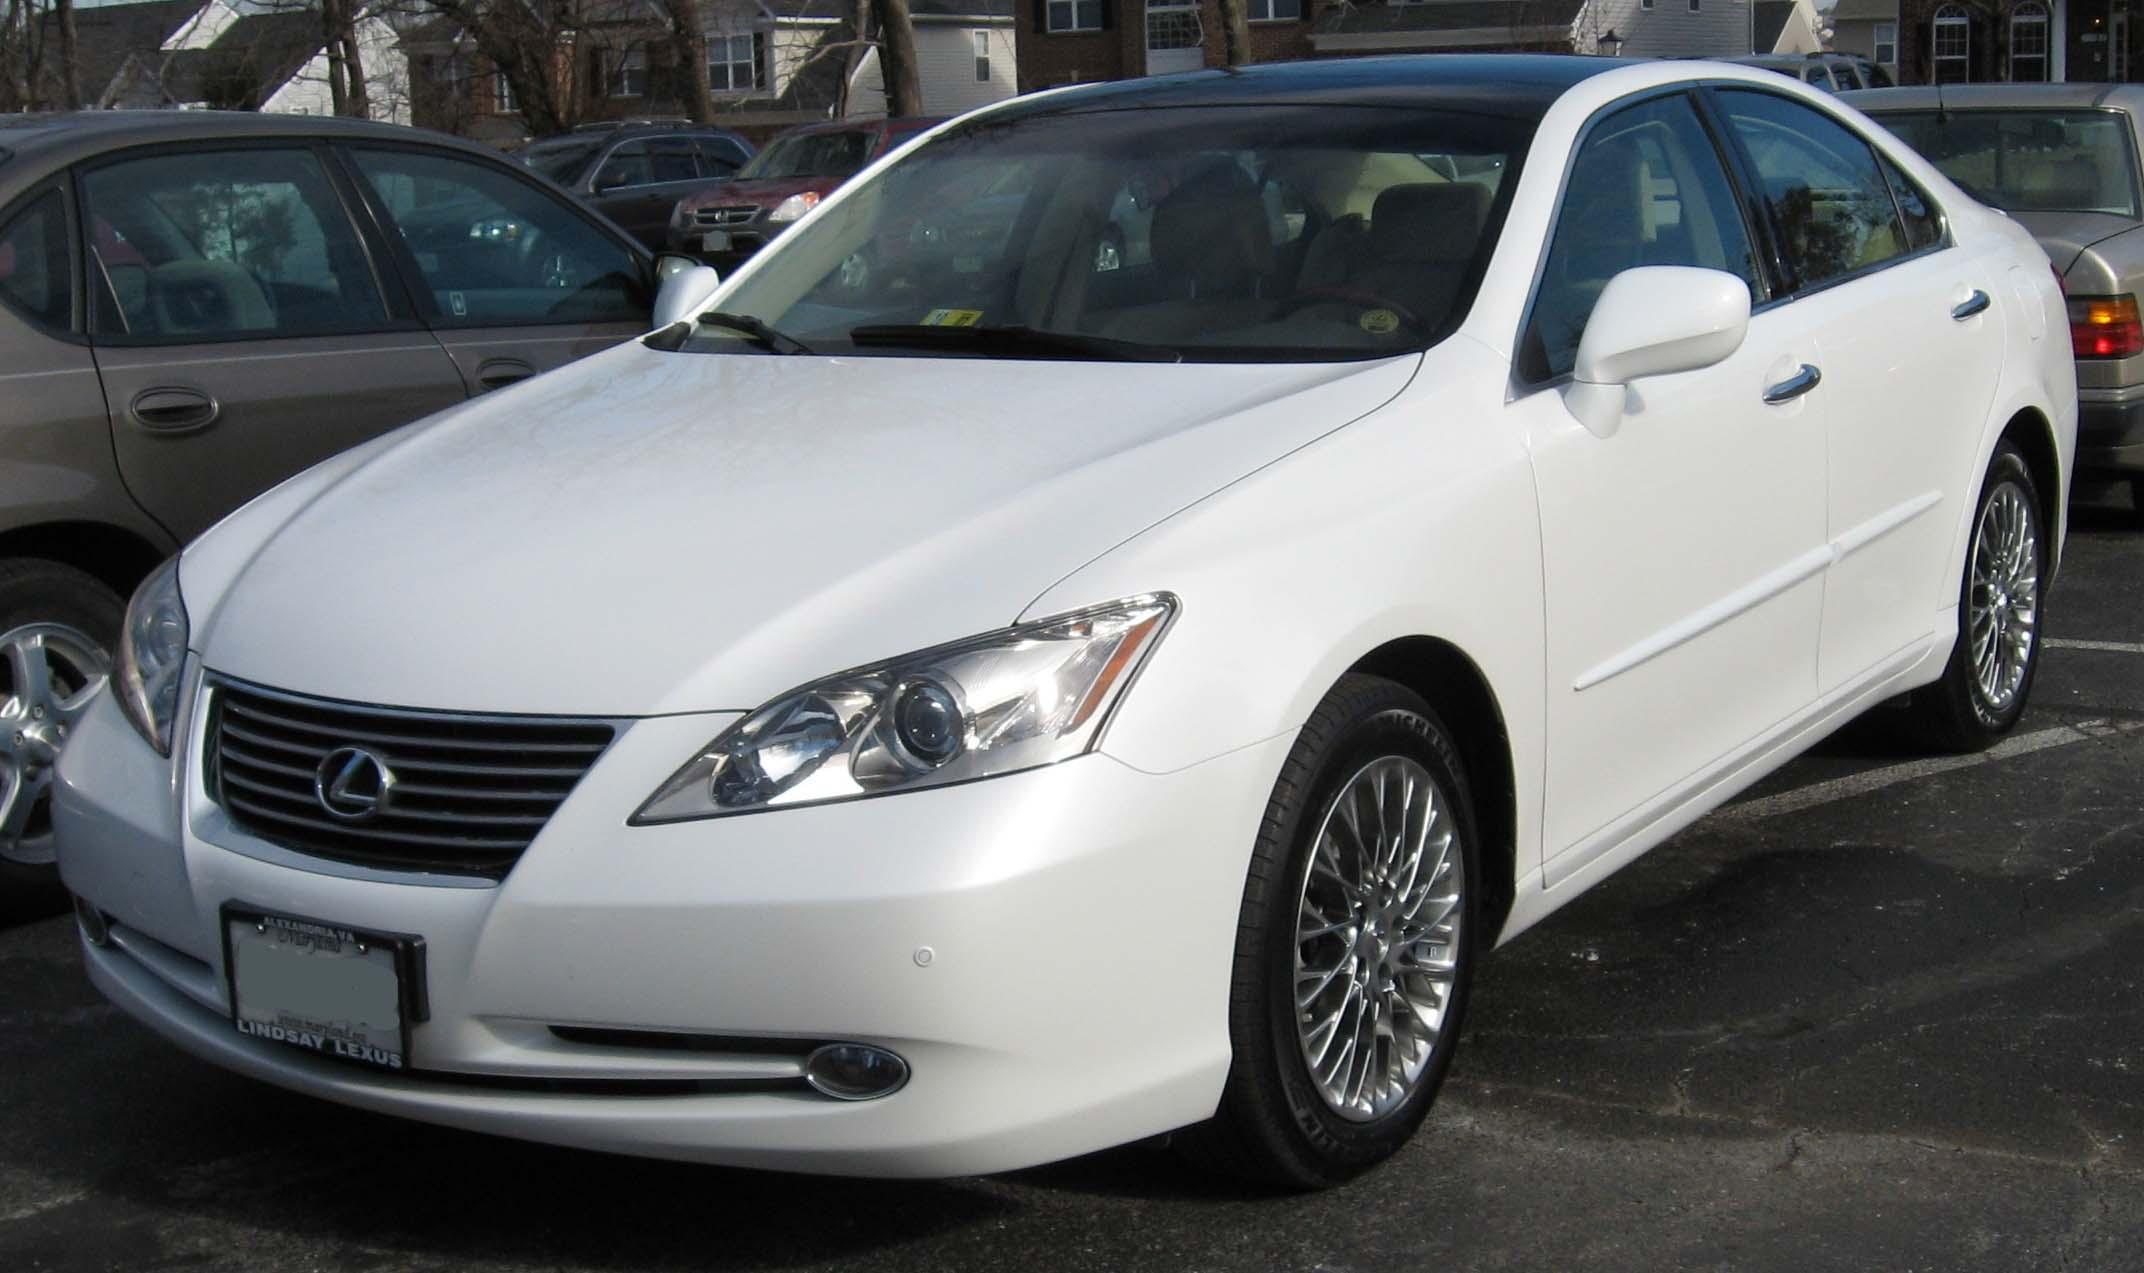 LEXUS ES350 2006 2007 2008 2009 SERVICE REPAIR MANUAL